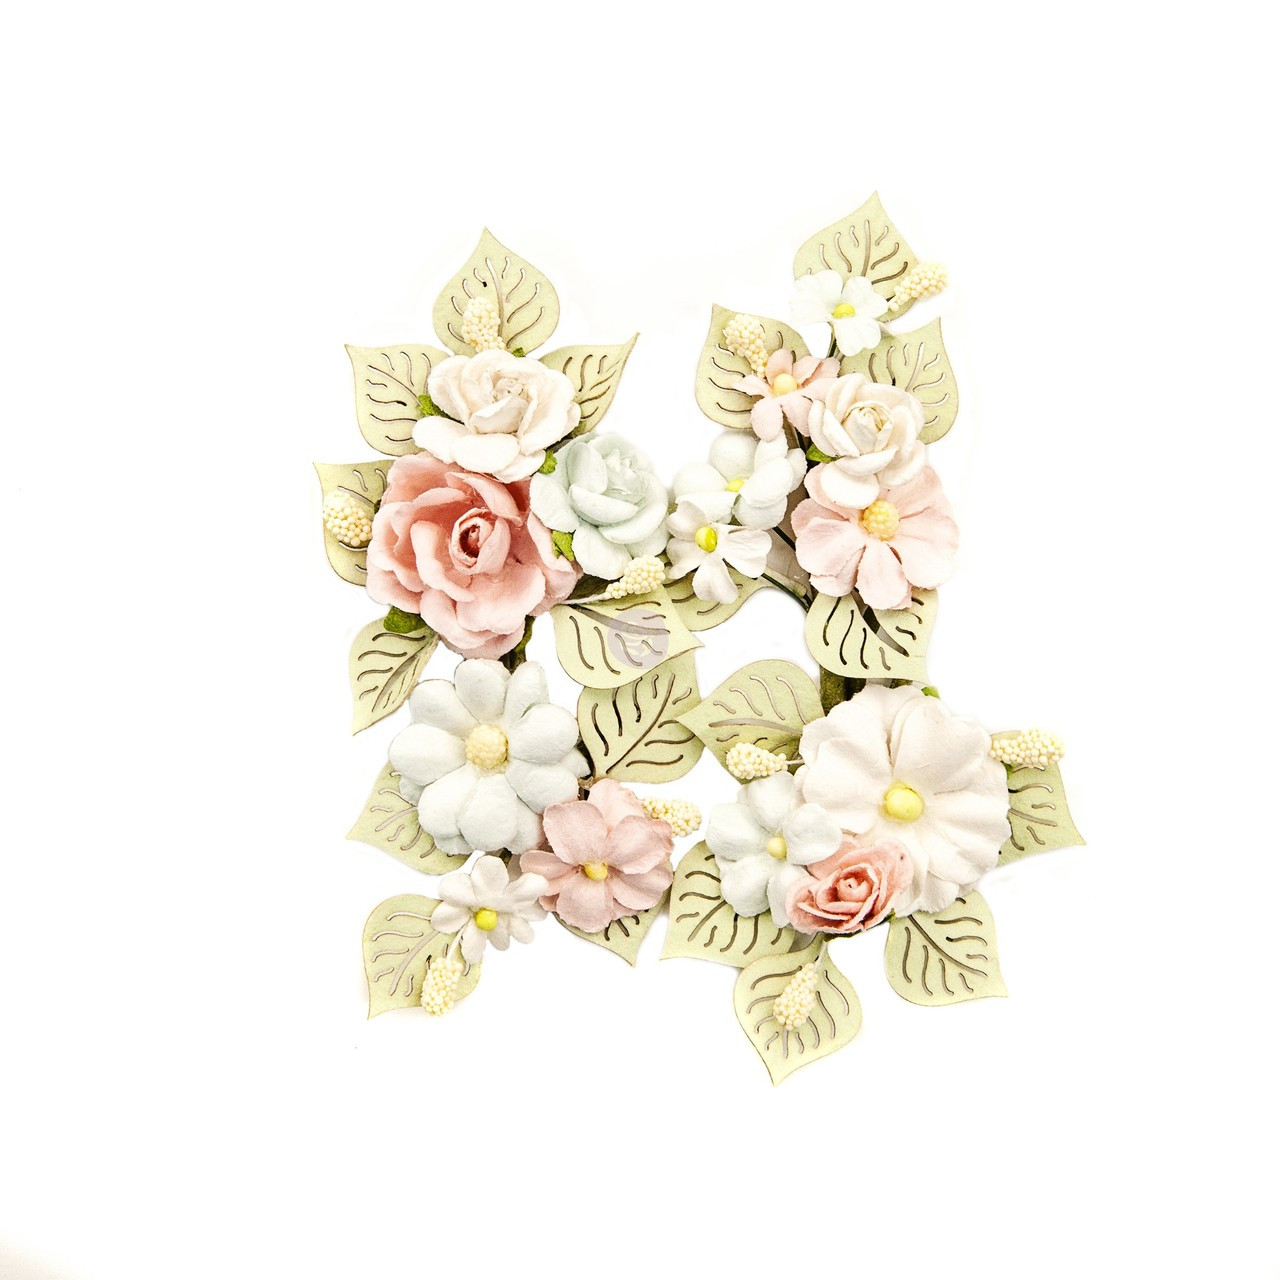 Kaisercraft Wooden Flourishes Rose And Leaves,roseS And Butterflies